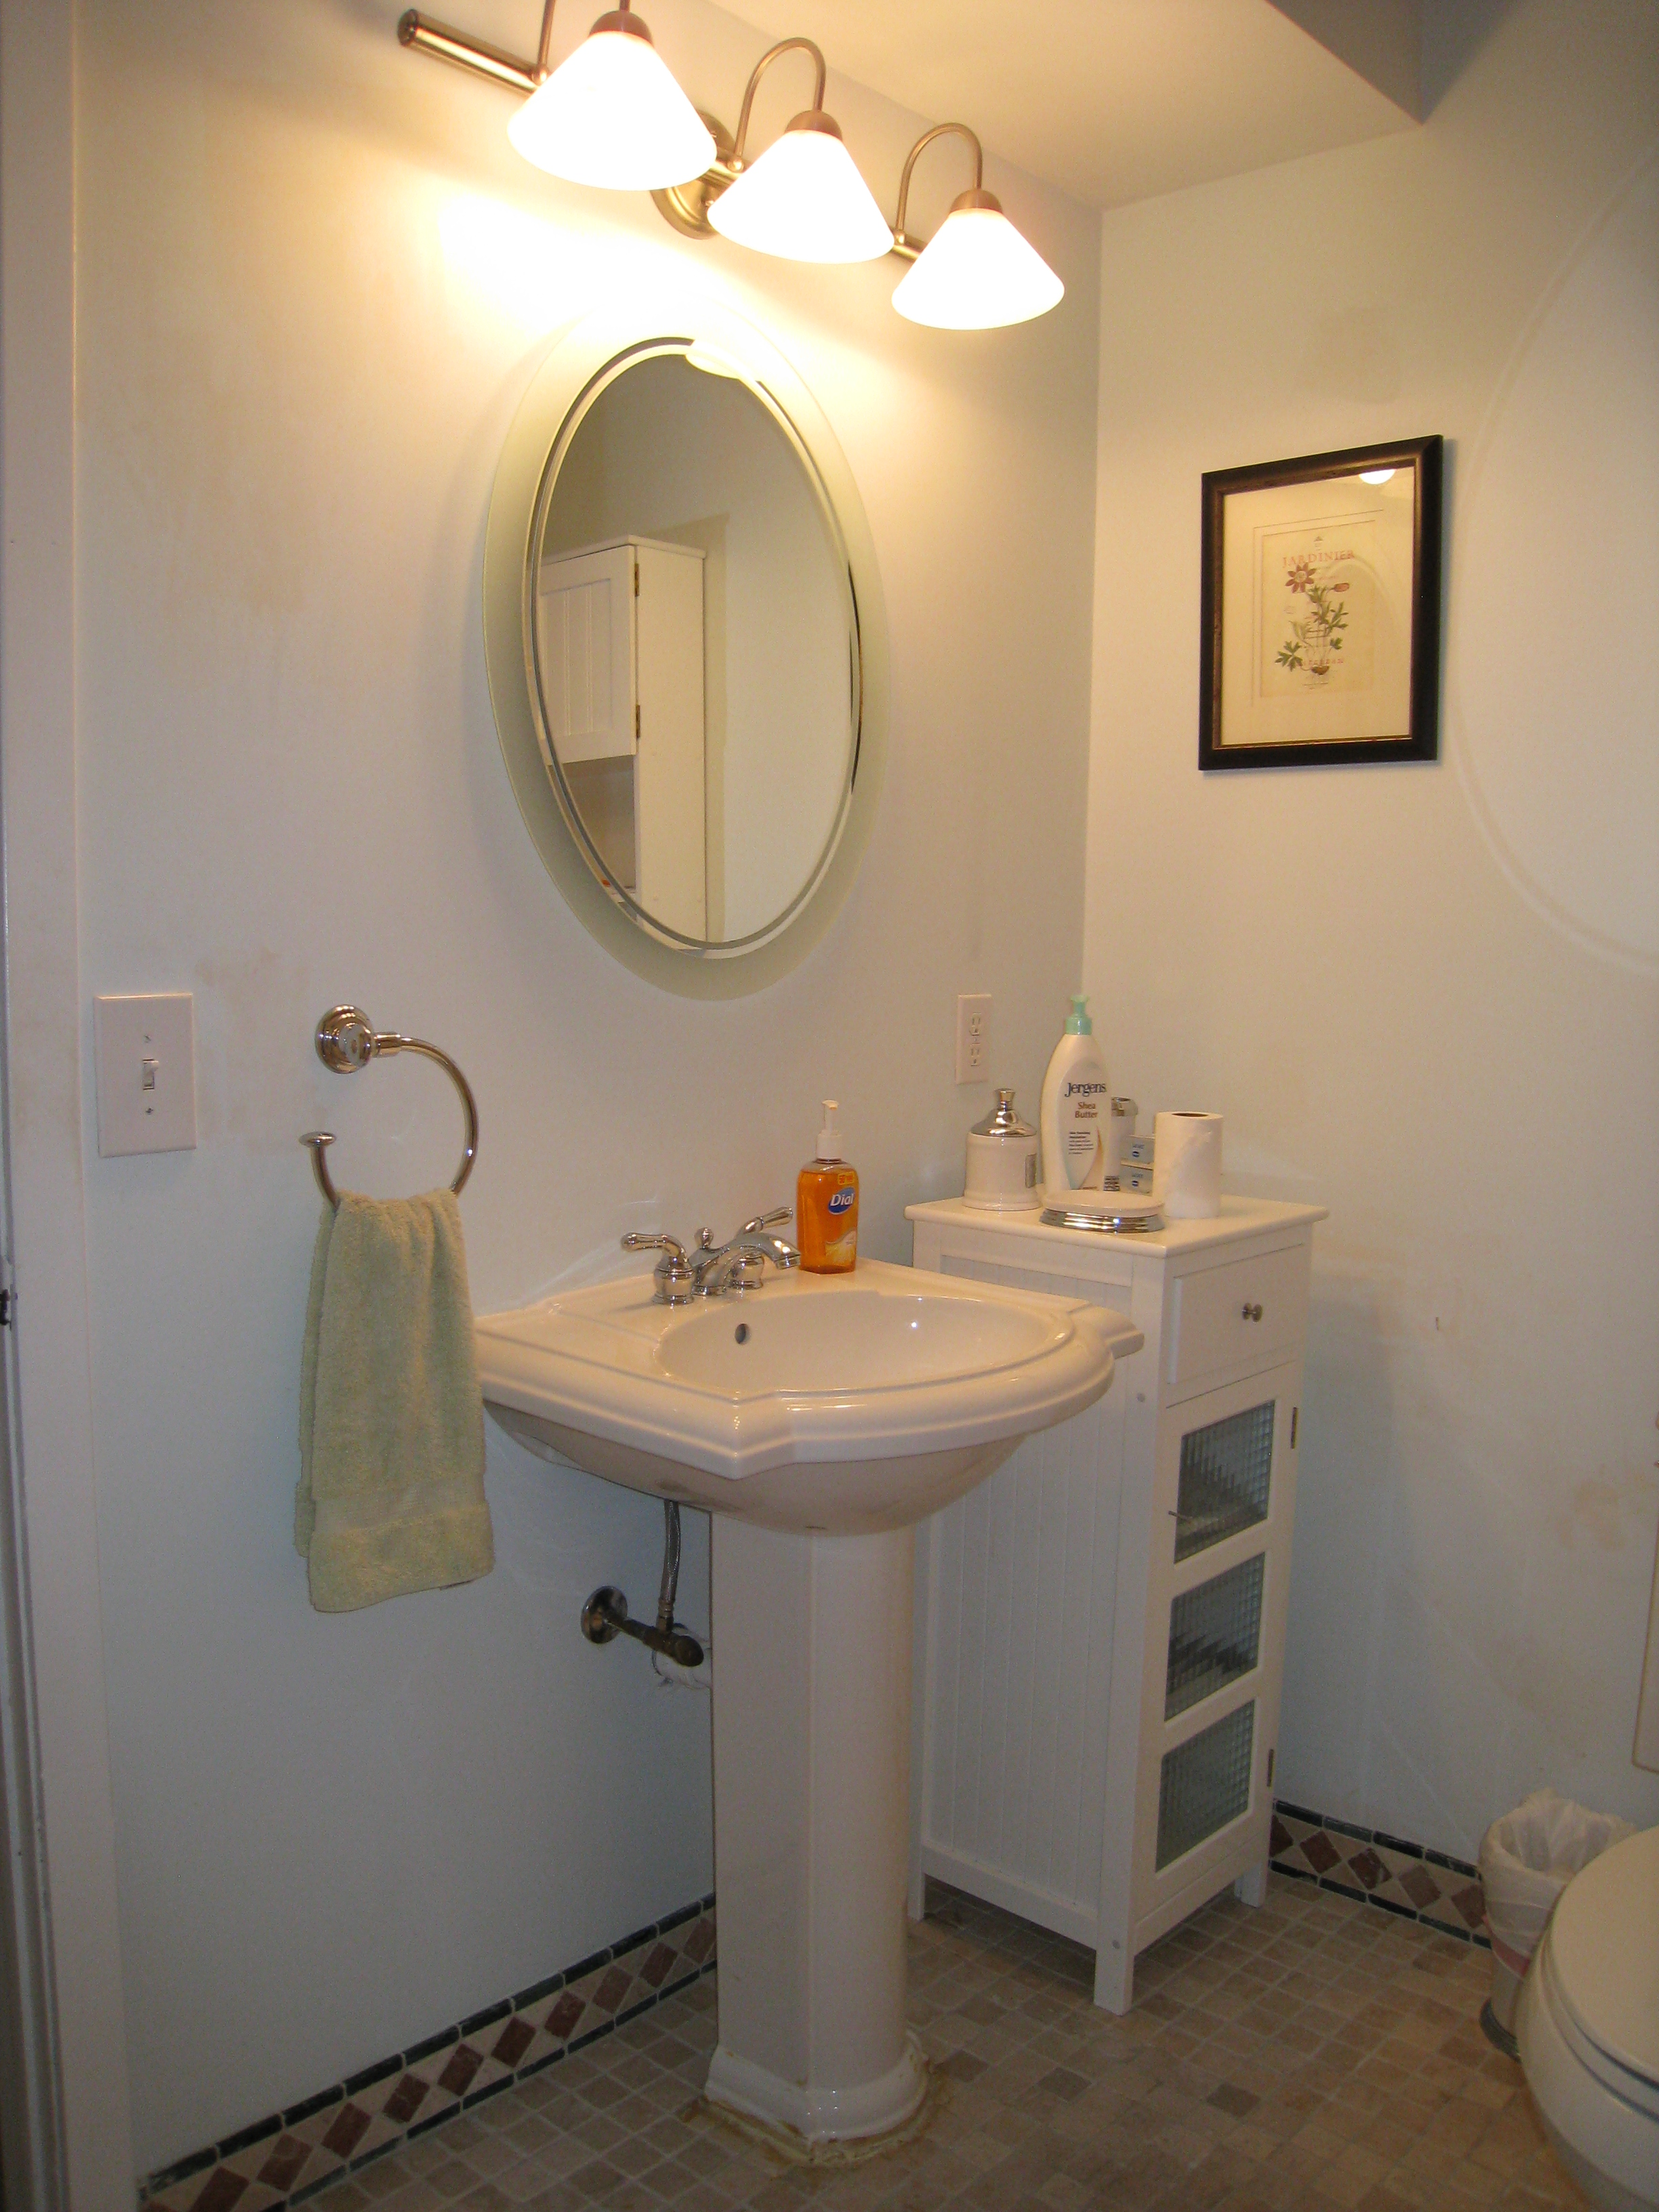 Atwell staged home services center atwell staged - Nicely decorated bathrooms ...